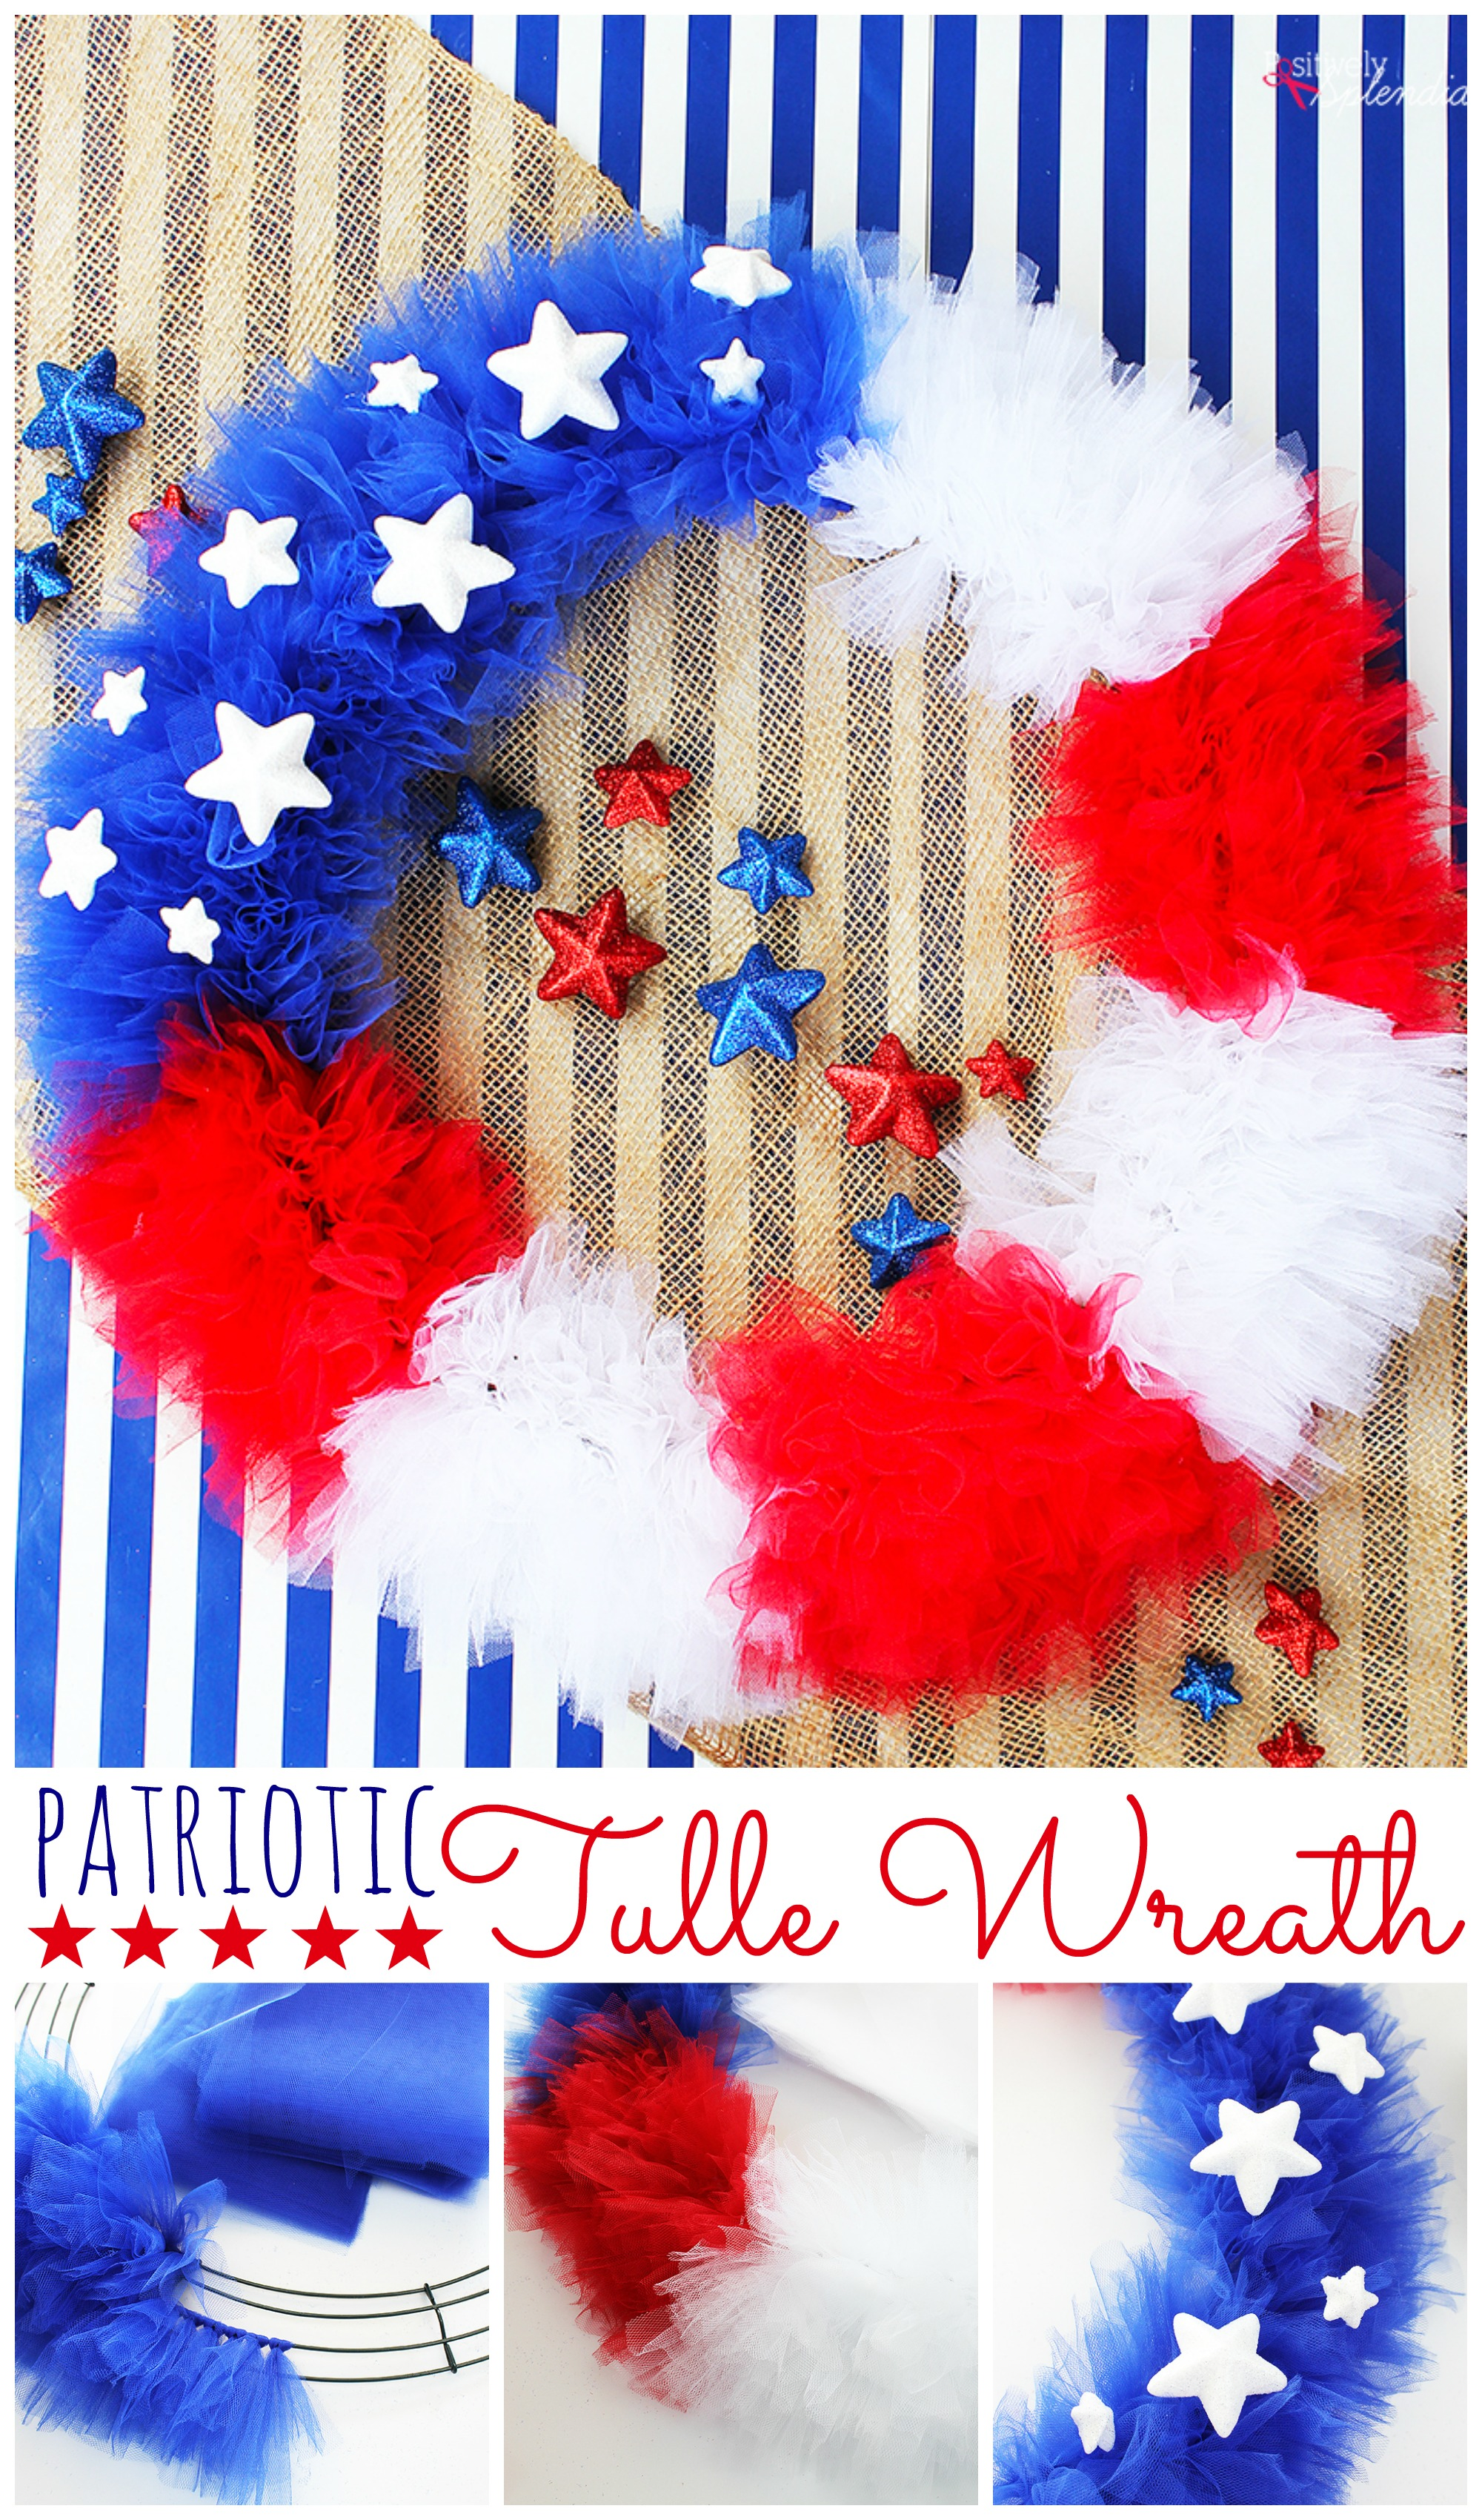 Patriotic Tulle Wreath Craft Tutorial